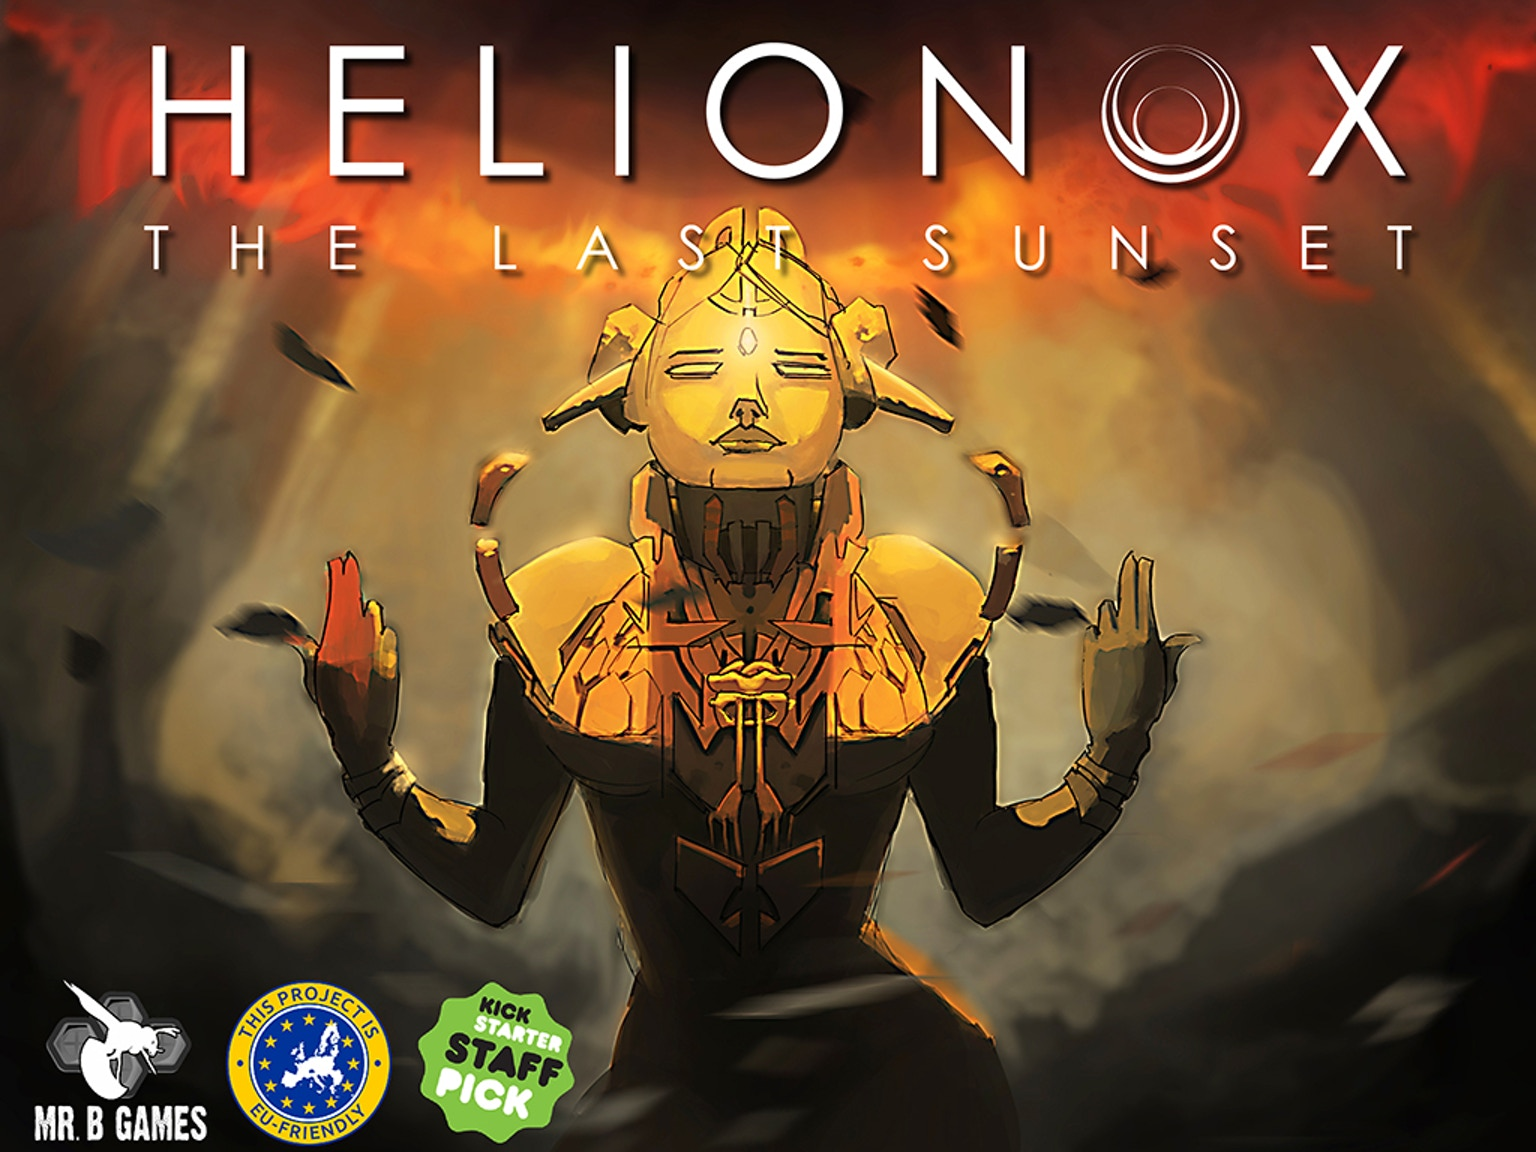 Helionox is a movement based sci-fi deck building strategy game where great leaders vie for control in a shattered solar system.